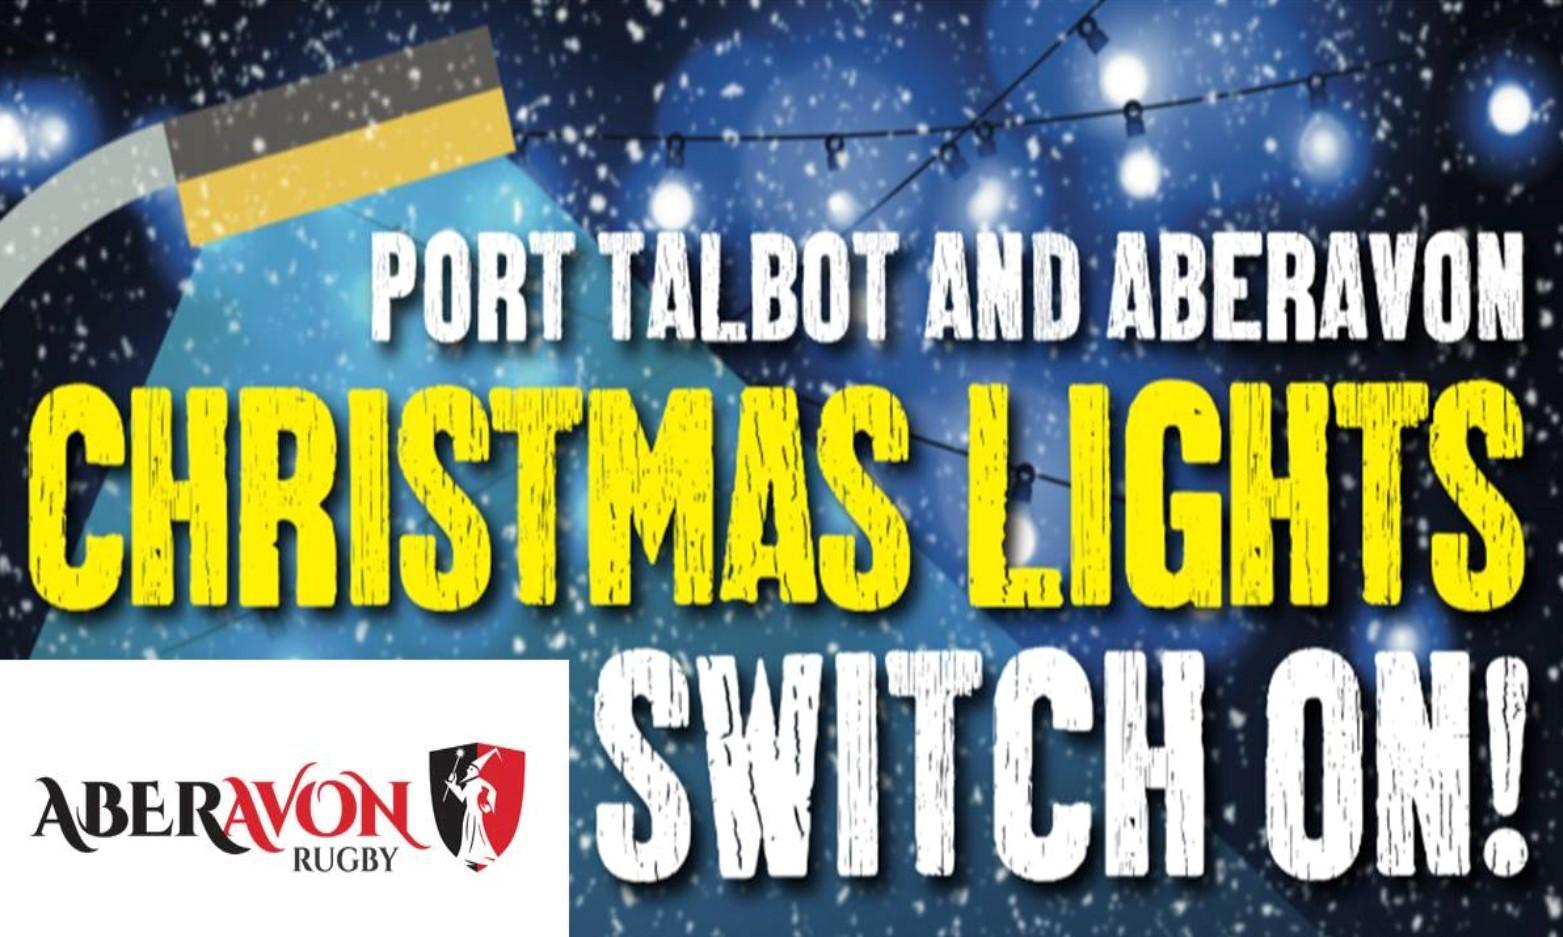 Port Talbot and Aberavon Christmas Lights Switch On